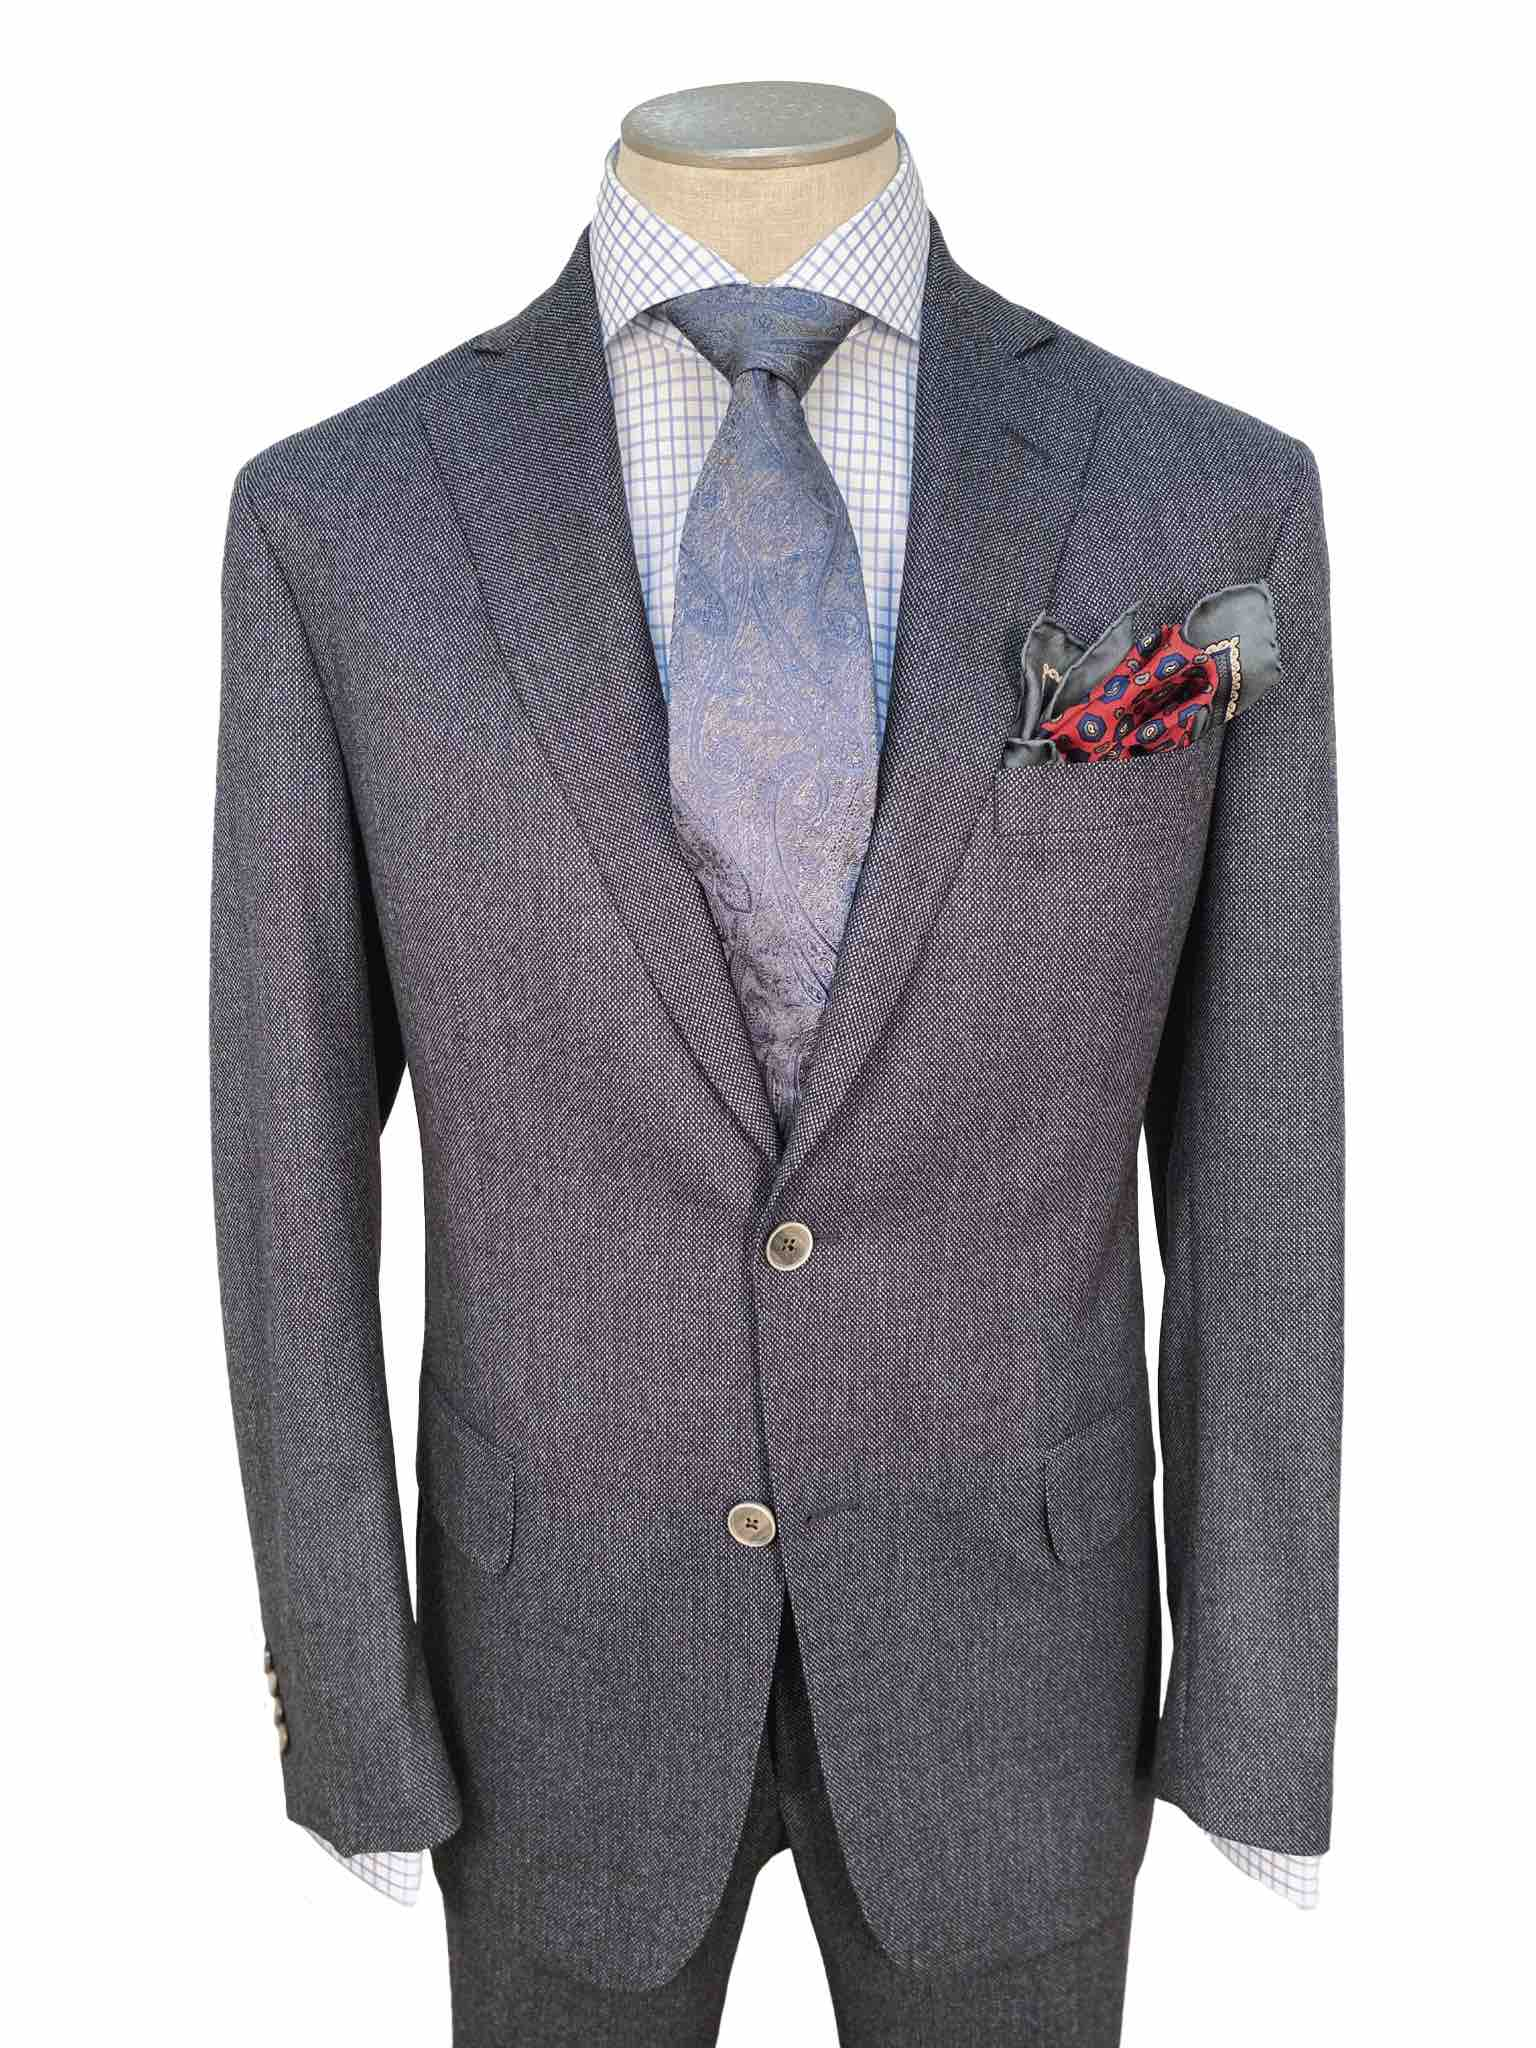 Men's Flat Front Pant Nested Suit Modern Cut - BLUE/GREY - 100% WOOL